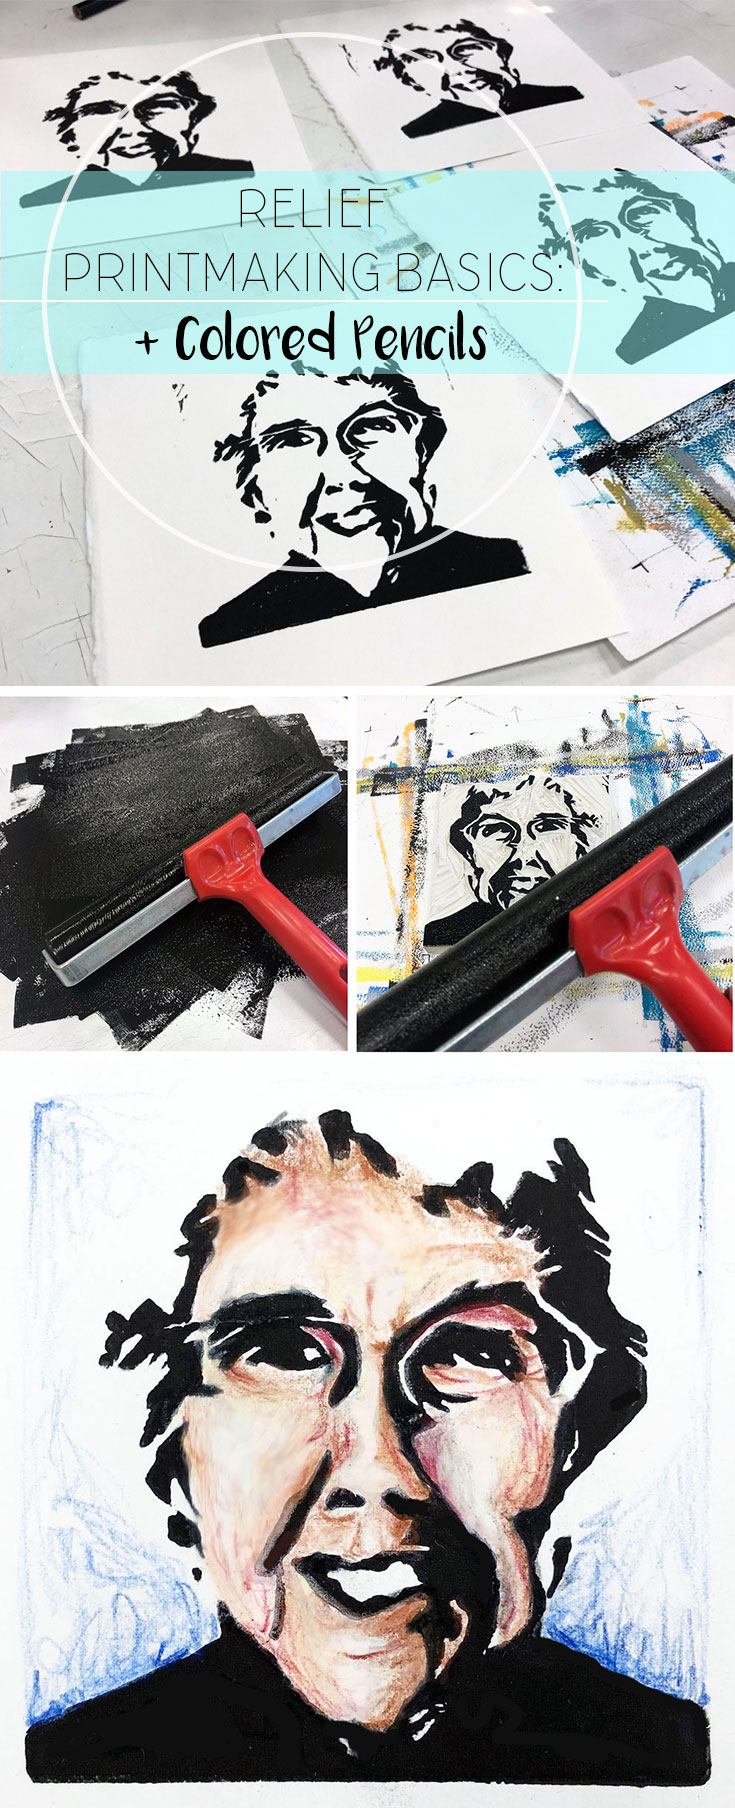 An introduction to relief printmaking that covers the basics of using linoleum to make a portrait print. This assignment is turned into a mixed media project by incorporating Prisma colored pencils to fill in the skin tone of the portrait. This is one post in an art education blog hop. Visit and check out more!